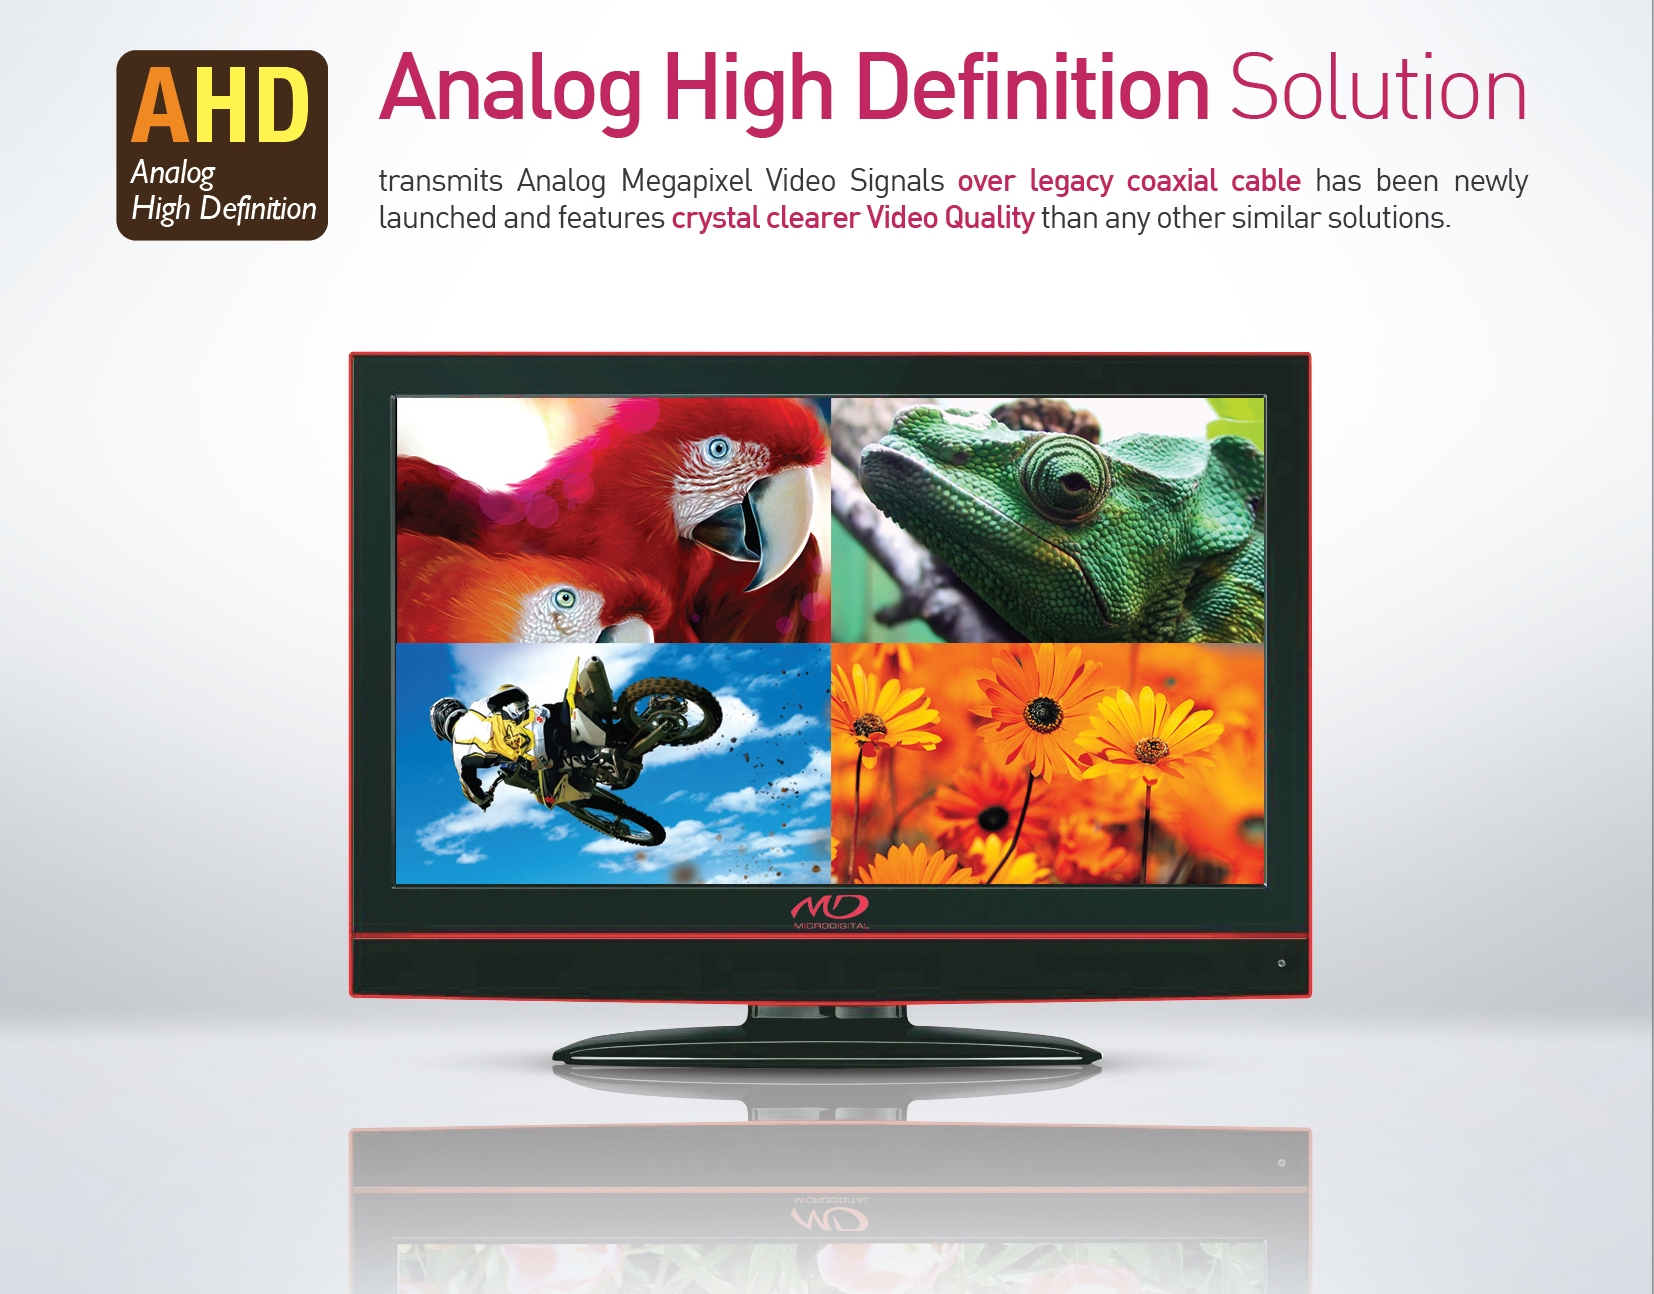 AHD Analog High Definition